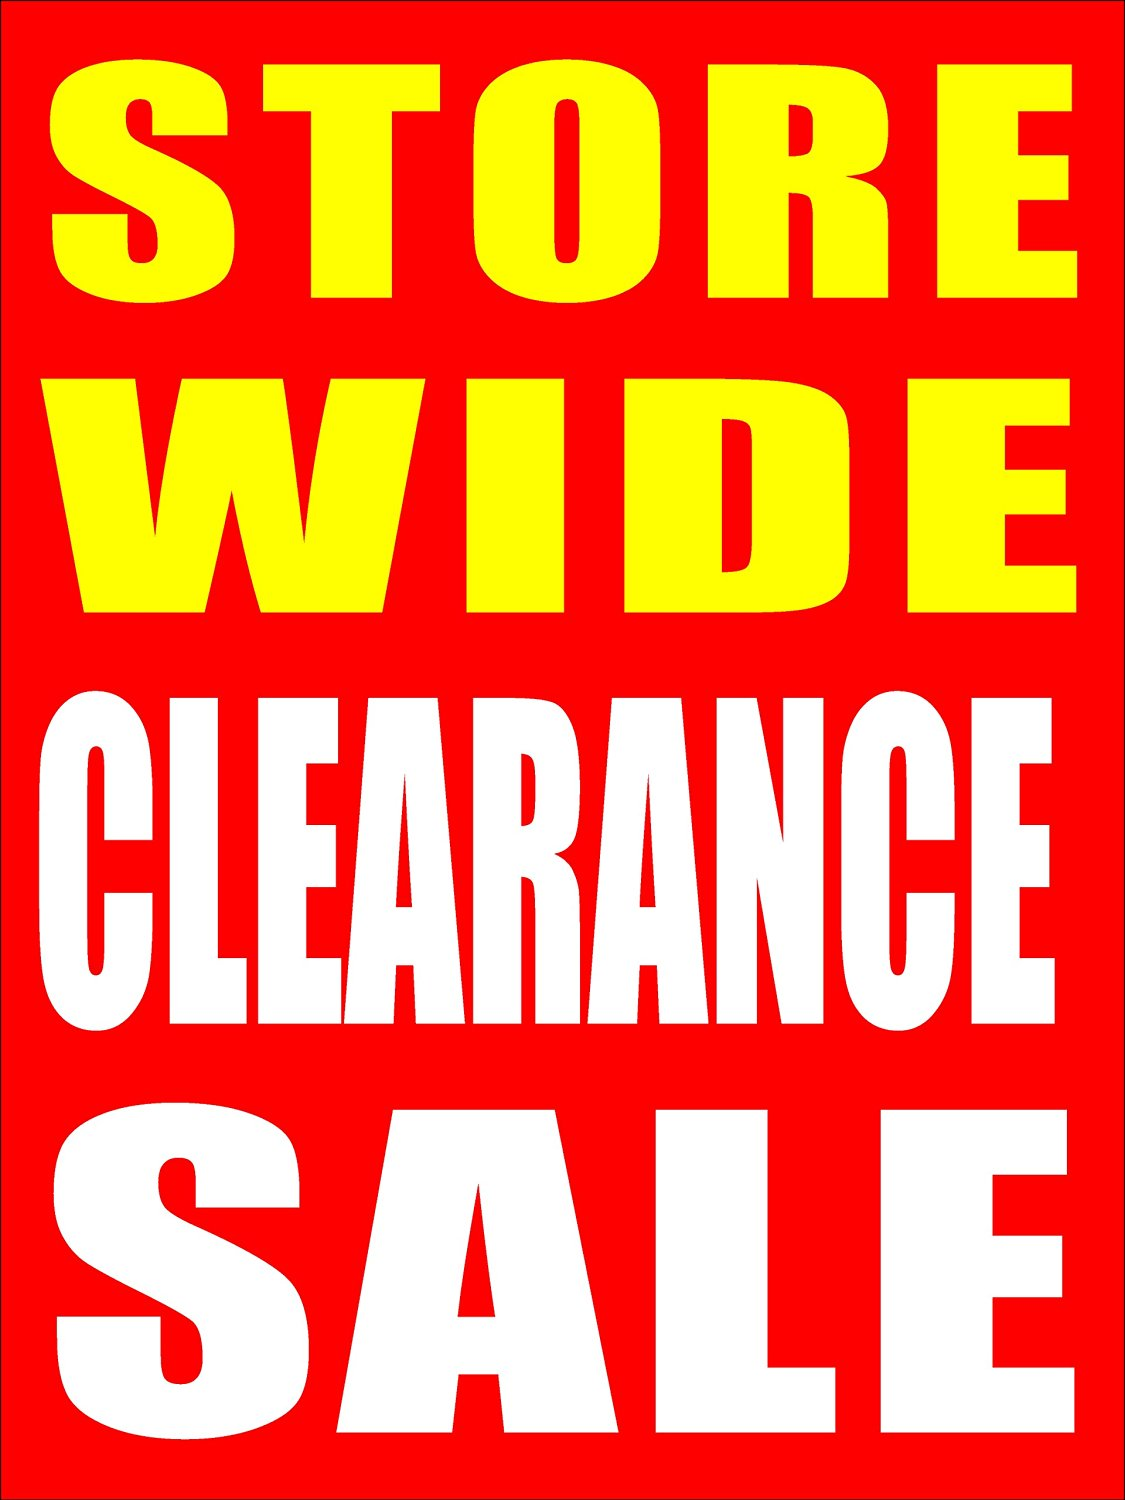 Get Quotations Store Wide Clearance Sale Business Retail Signs 18x24 Full Color